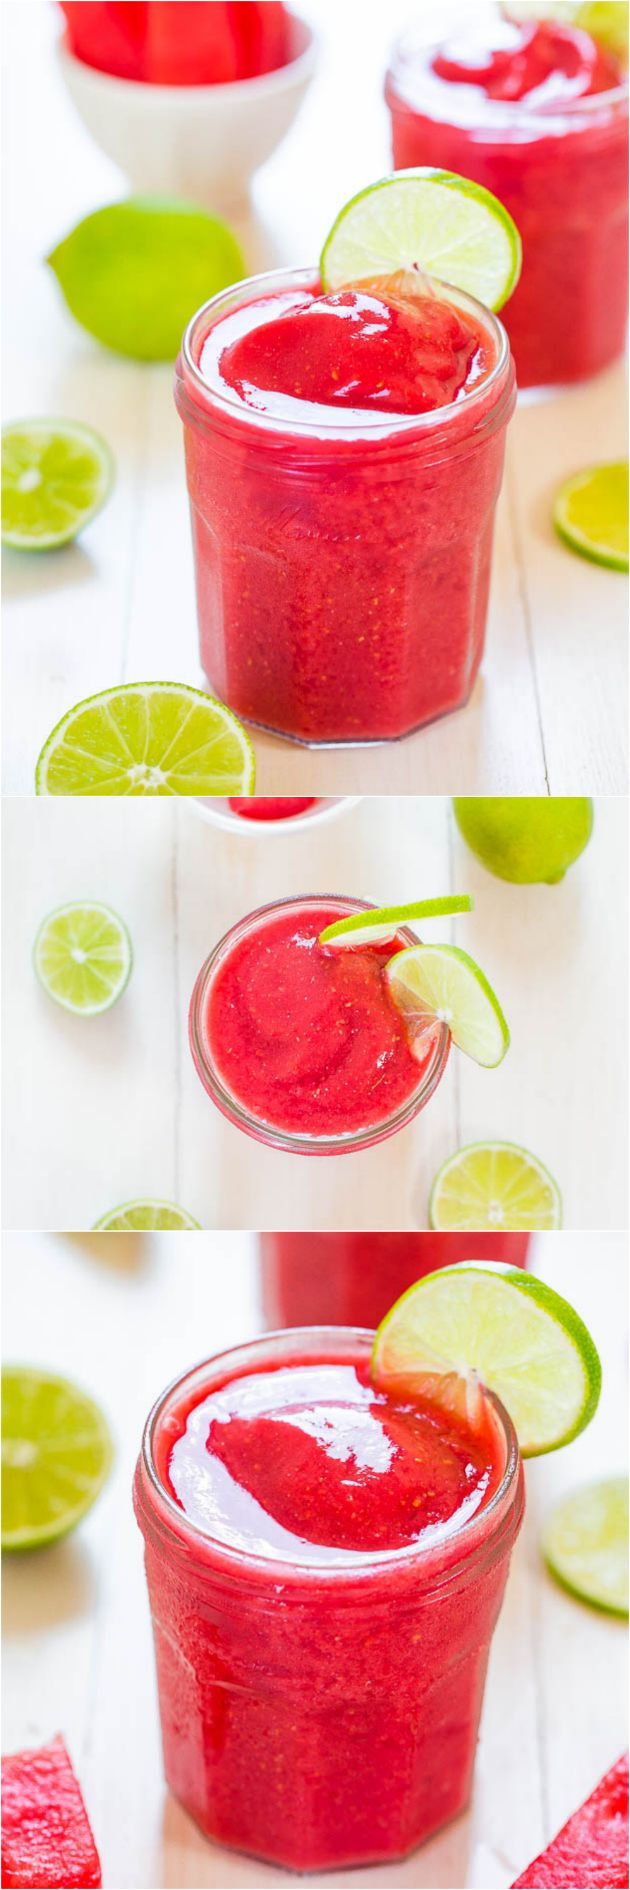 Watermelon Raspberry Slushies - Summertime in a glass! Cool, refreshing, and you'll want a refill before you know it! @averie